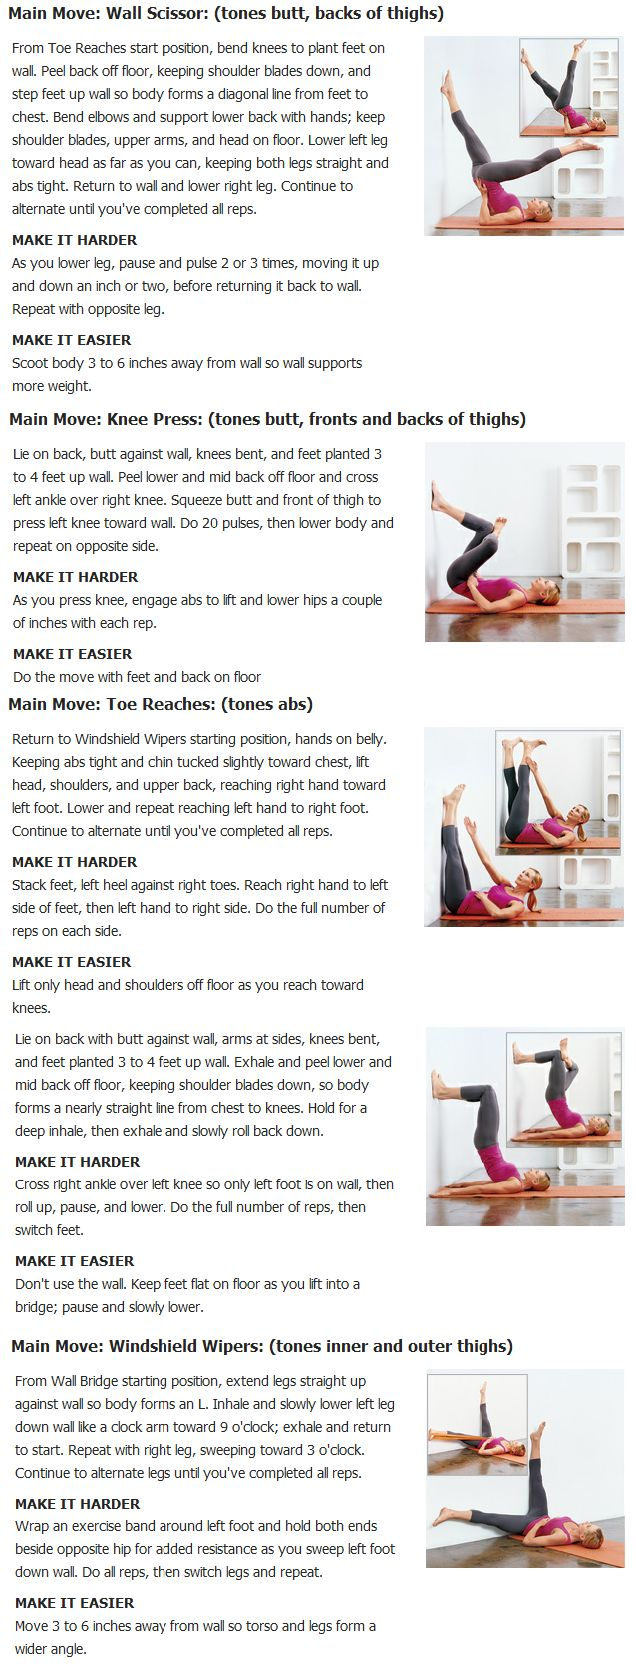 Butt, thigh and ab slimming exercises | Heathy Lifestyle ...